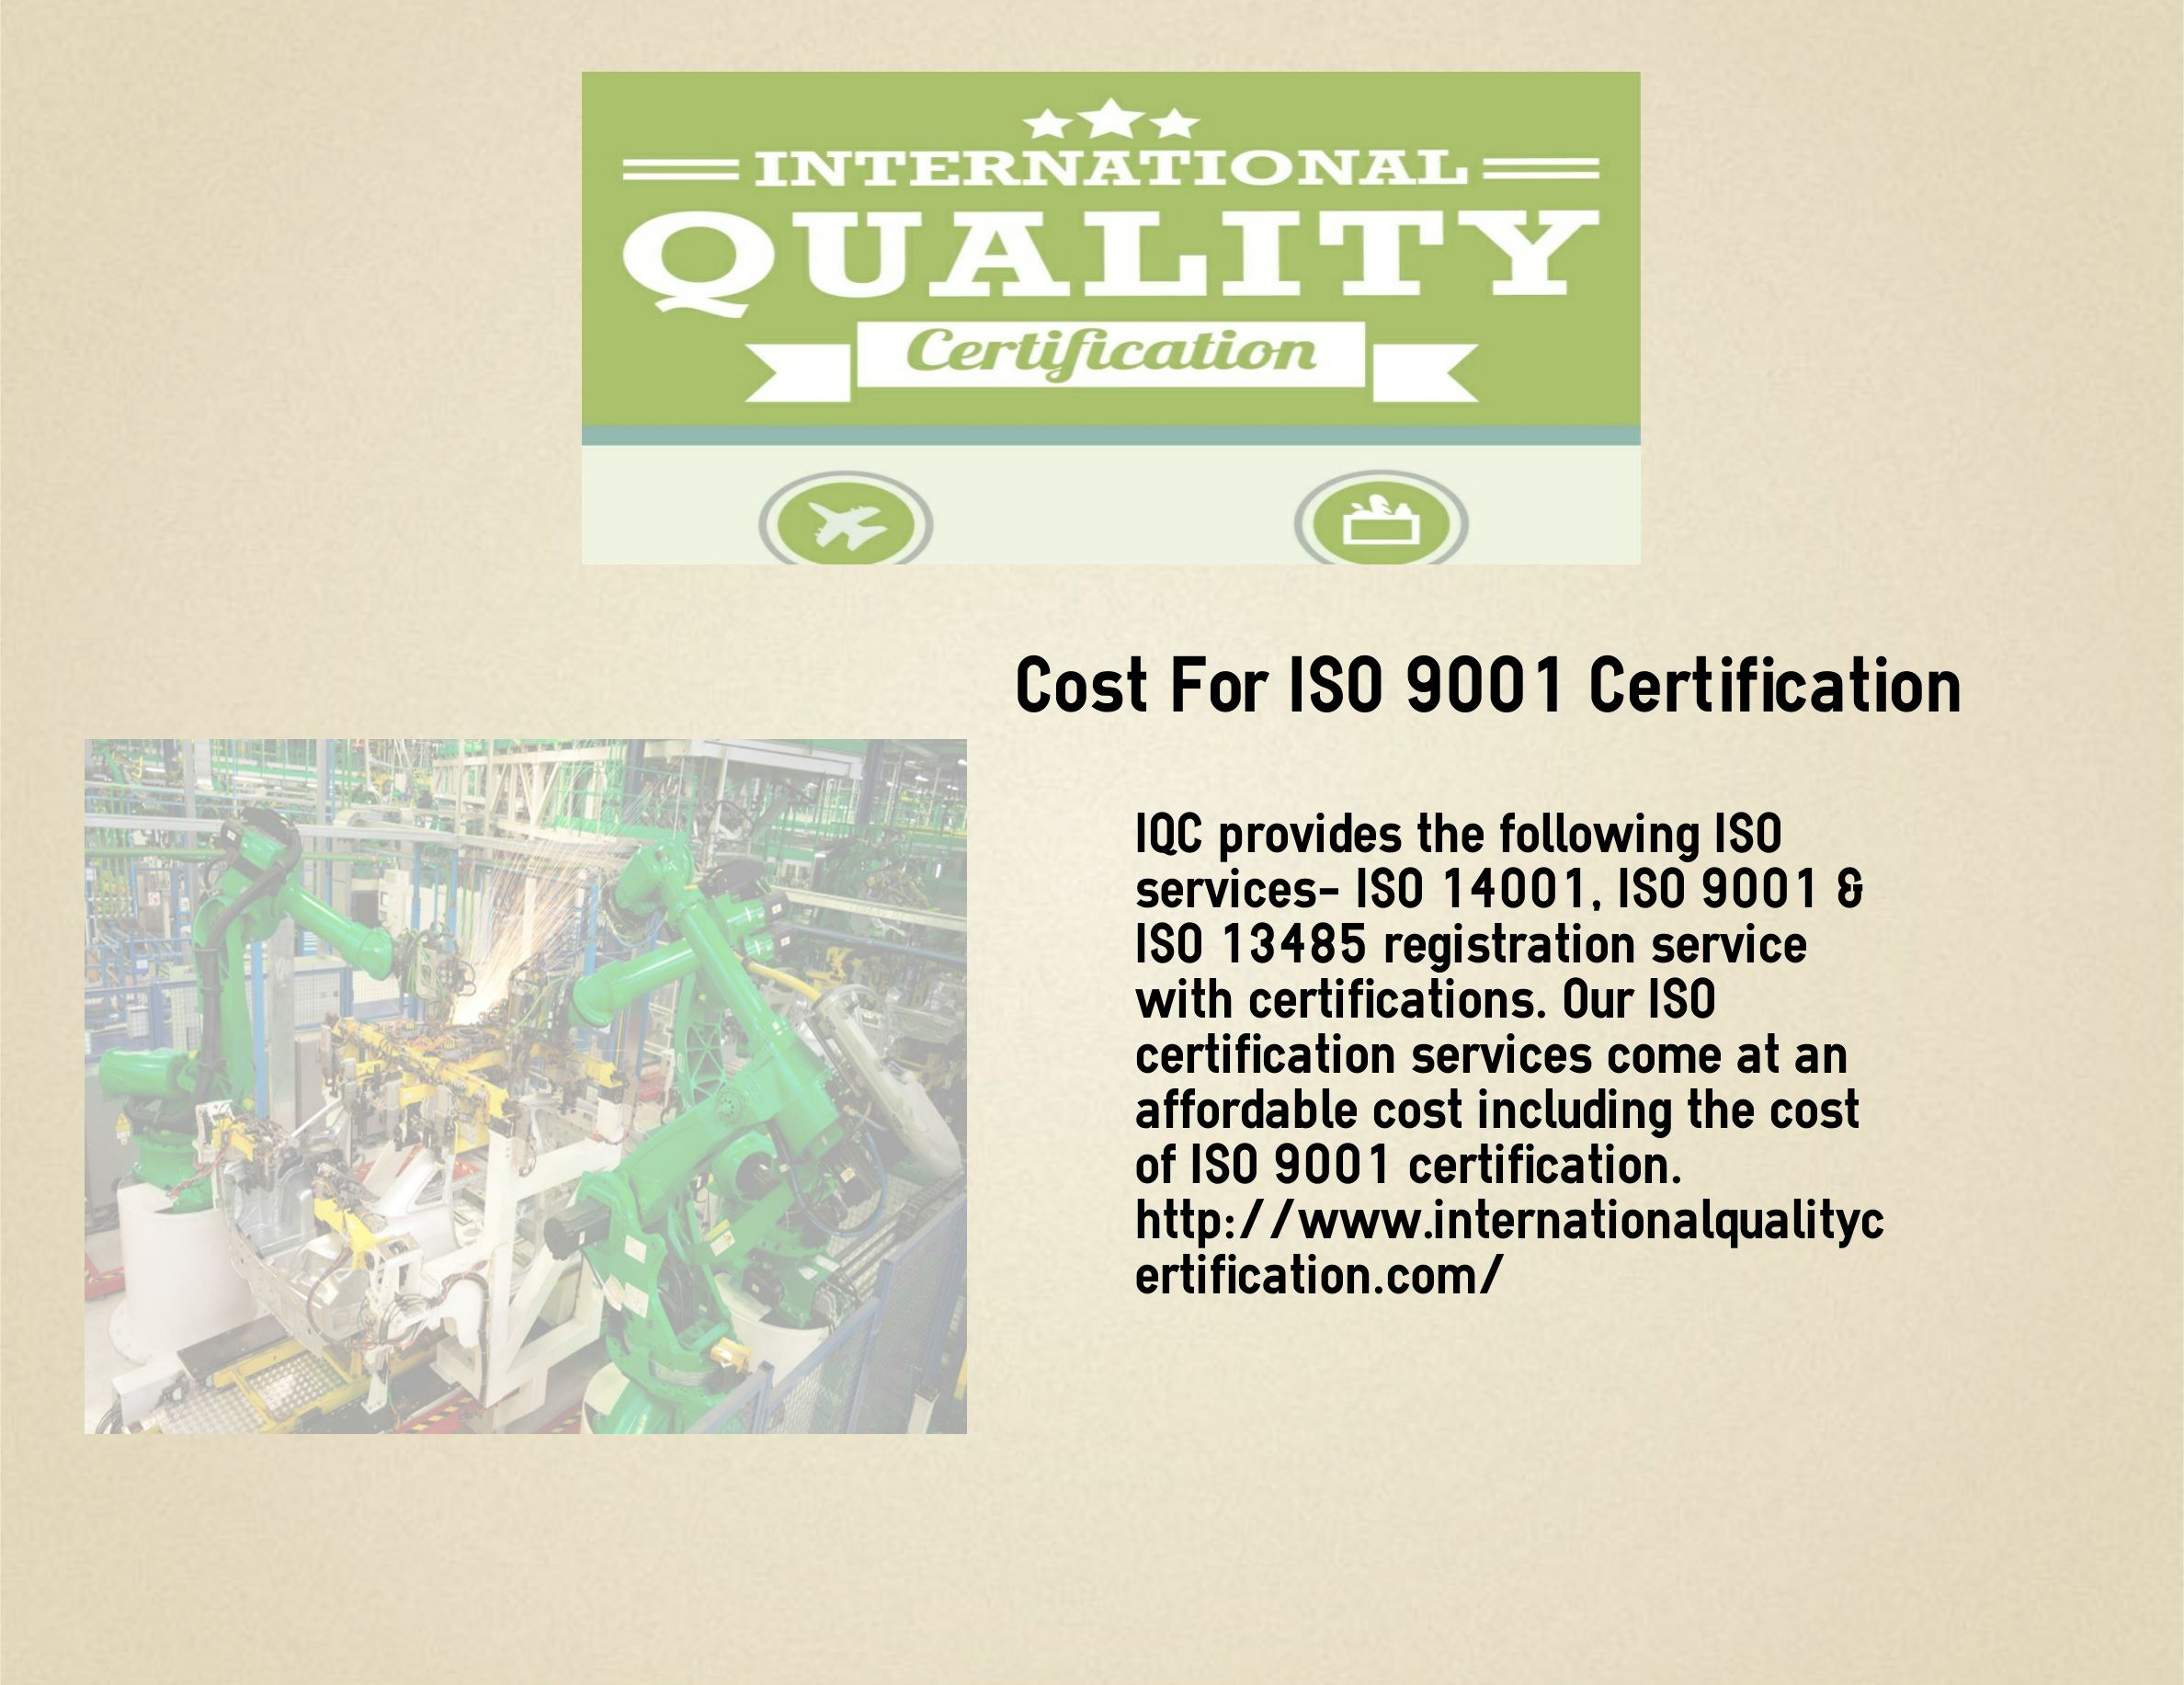 Iqc Provides The Following Iso Services Iso 14001 Iso 9001 Iso